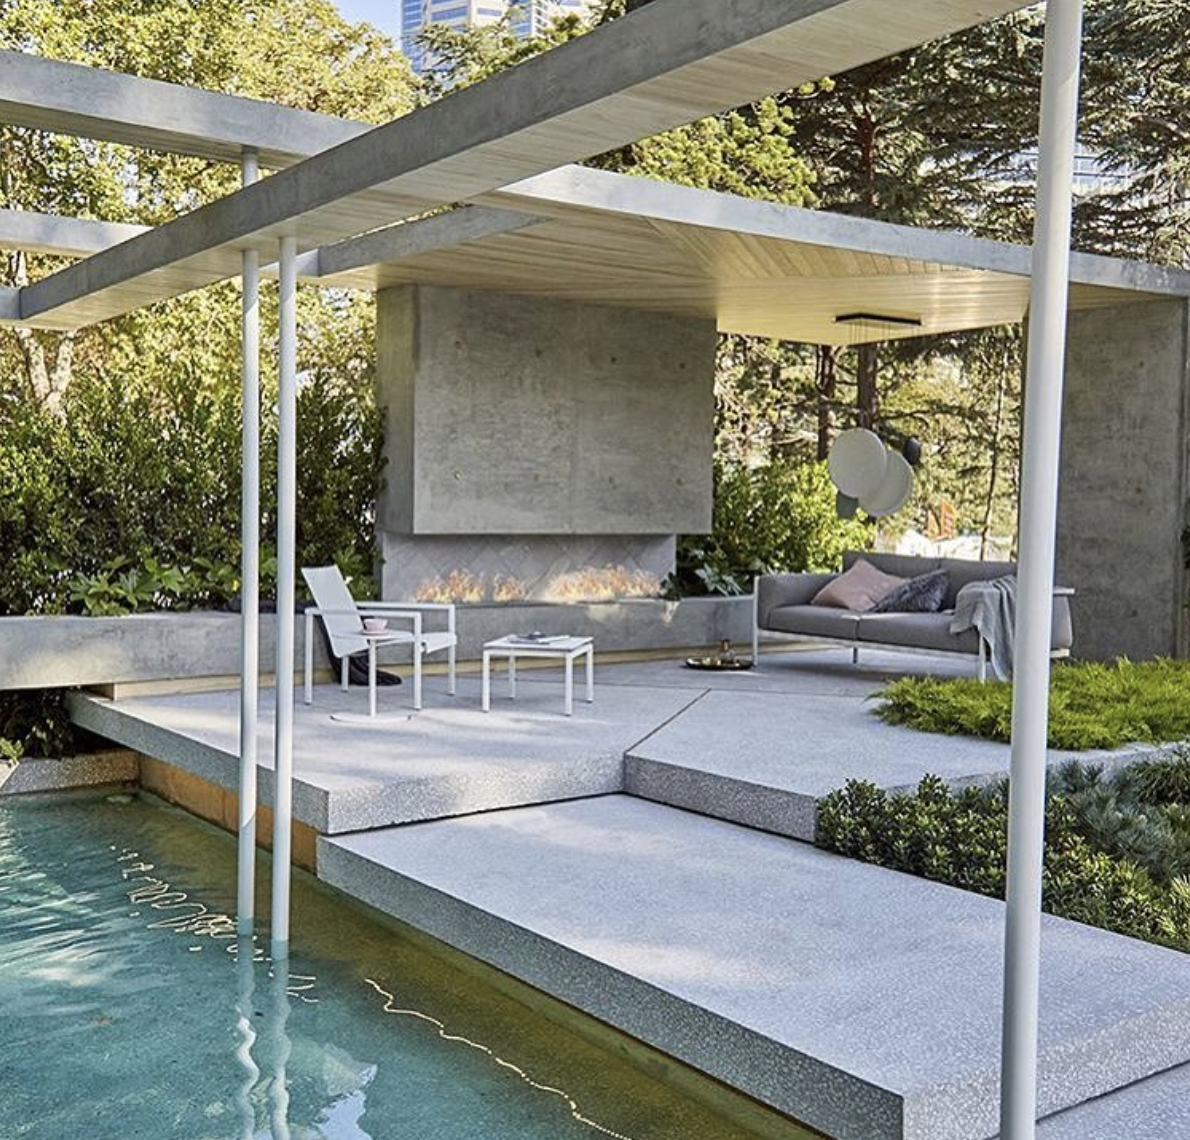 Terrasse Beton Dans Jardin Grey Concrete With Exposed Ground White Quartz By Keenan Harris